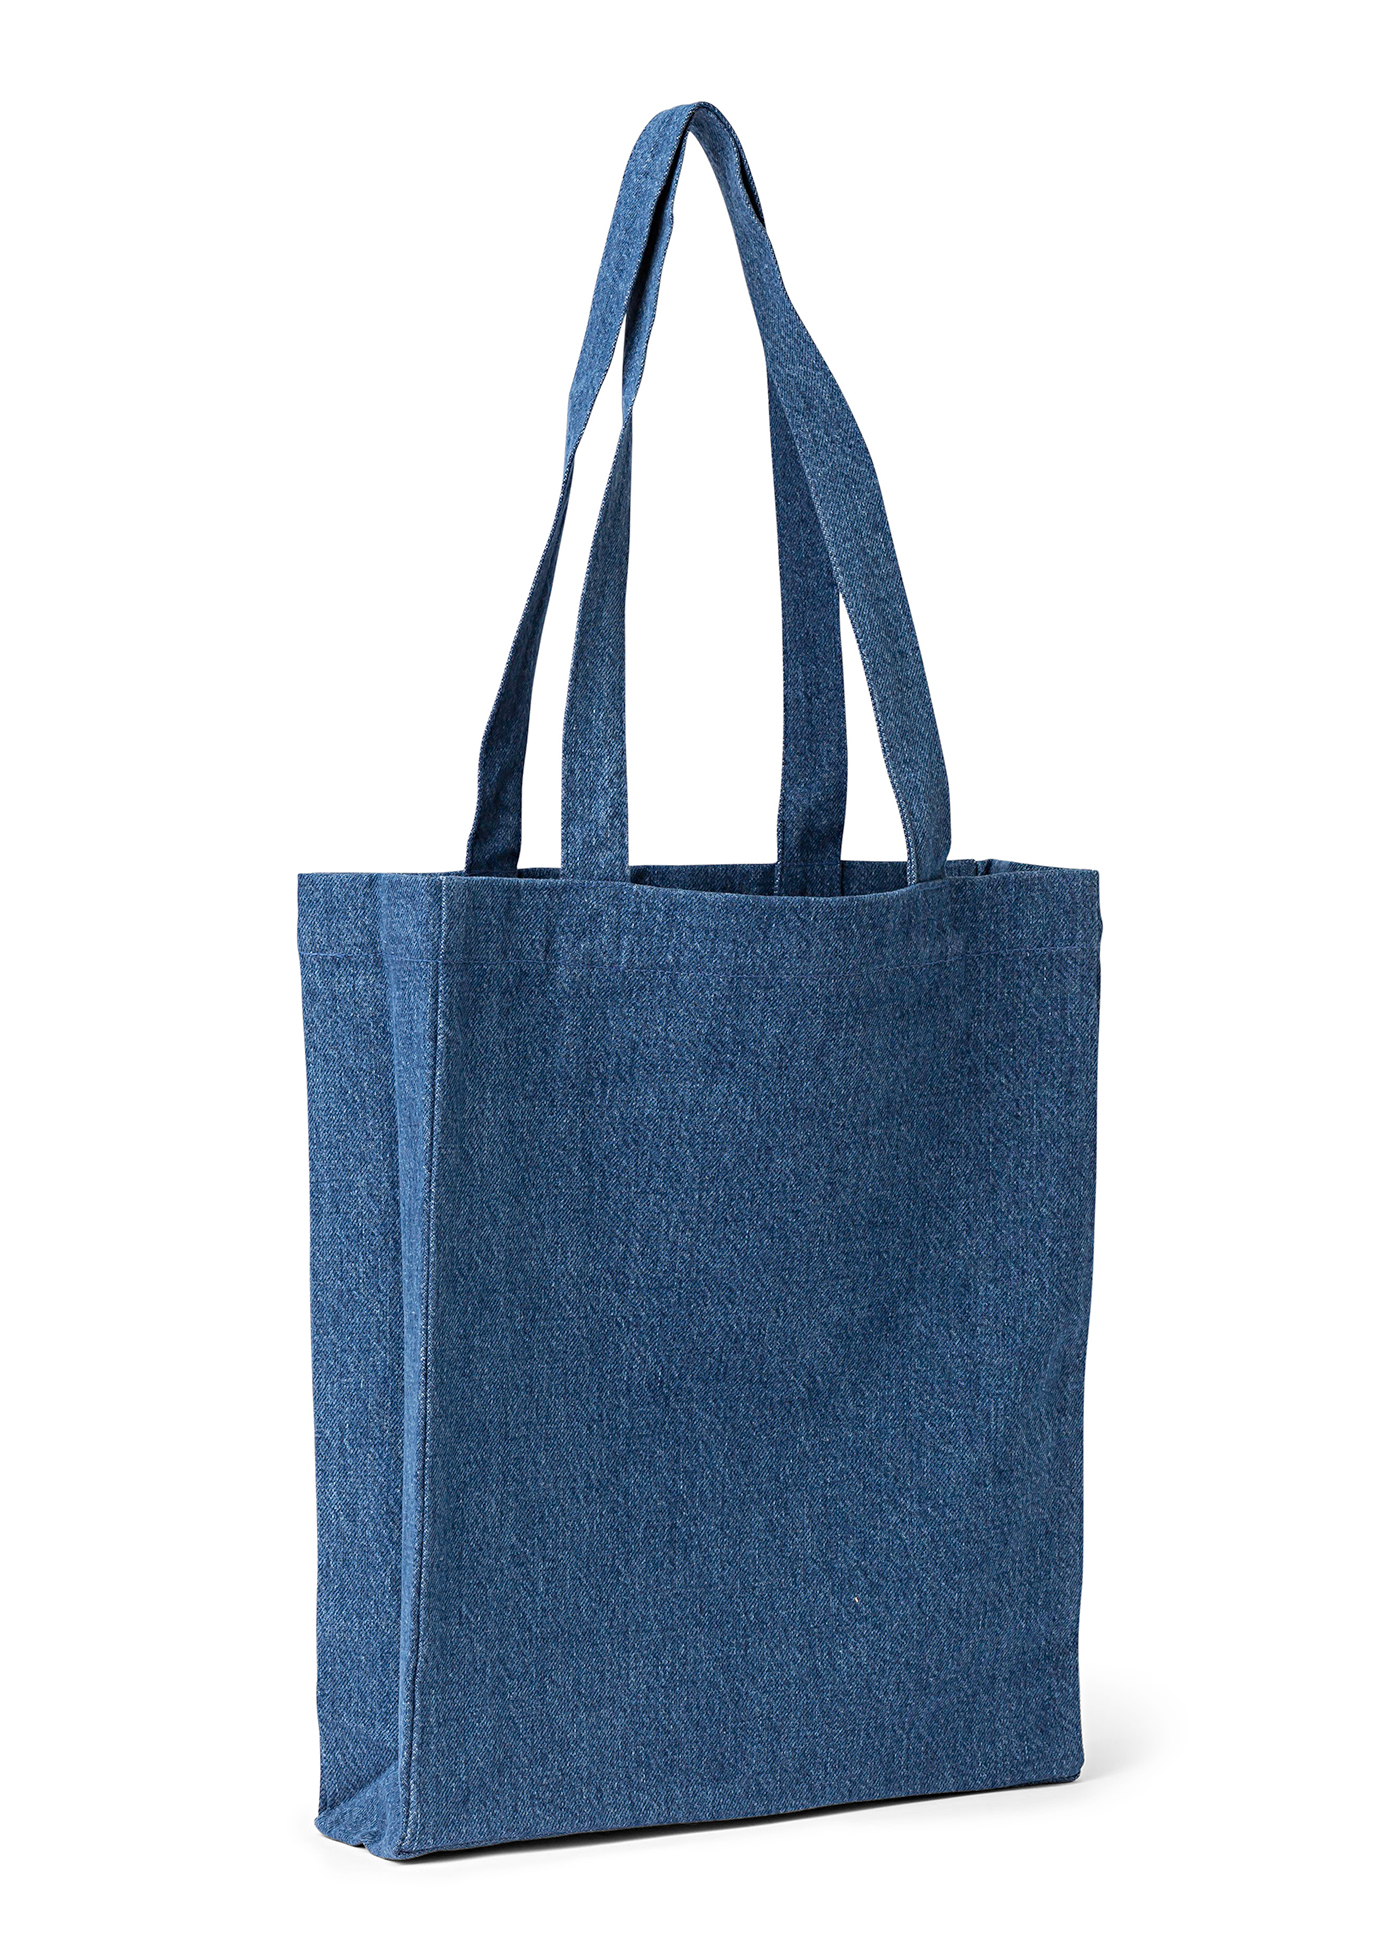 tote lou image number 1